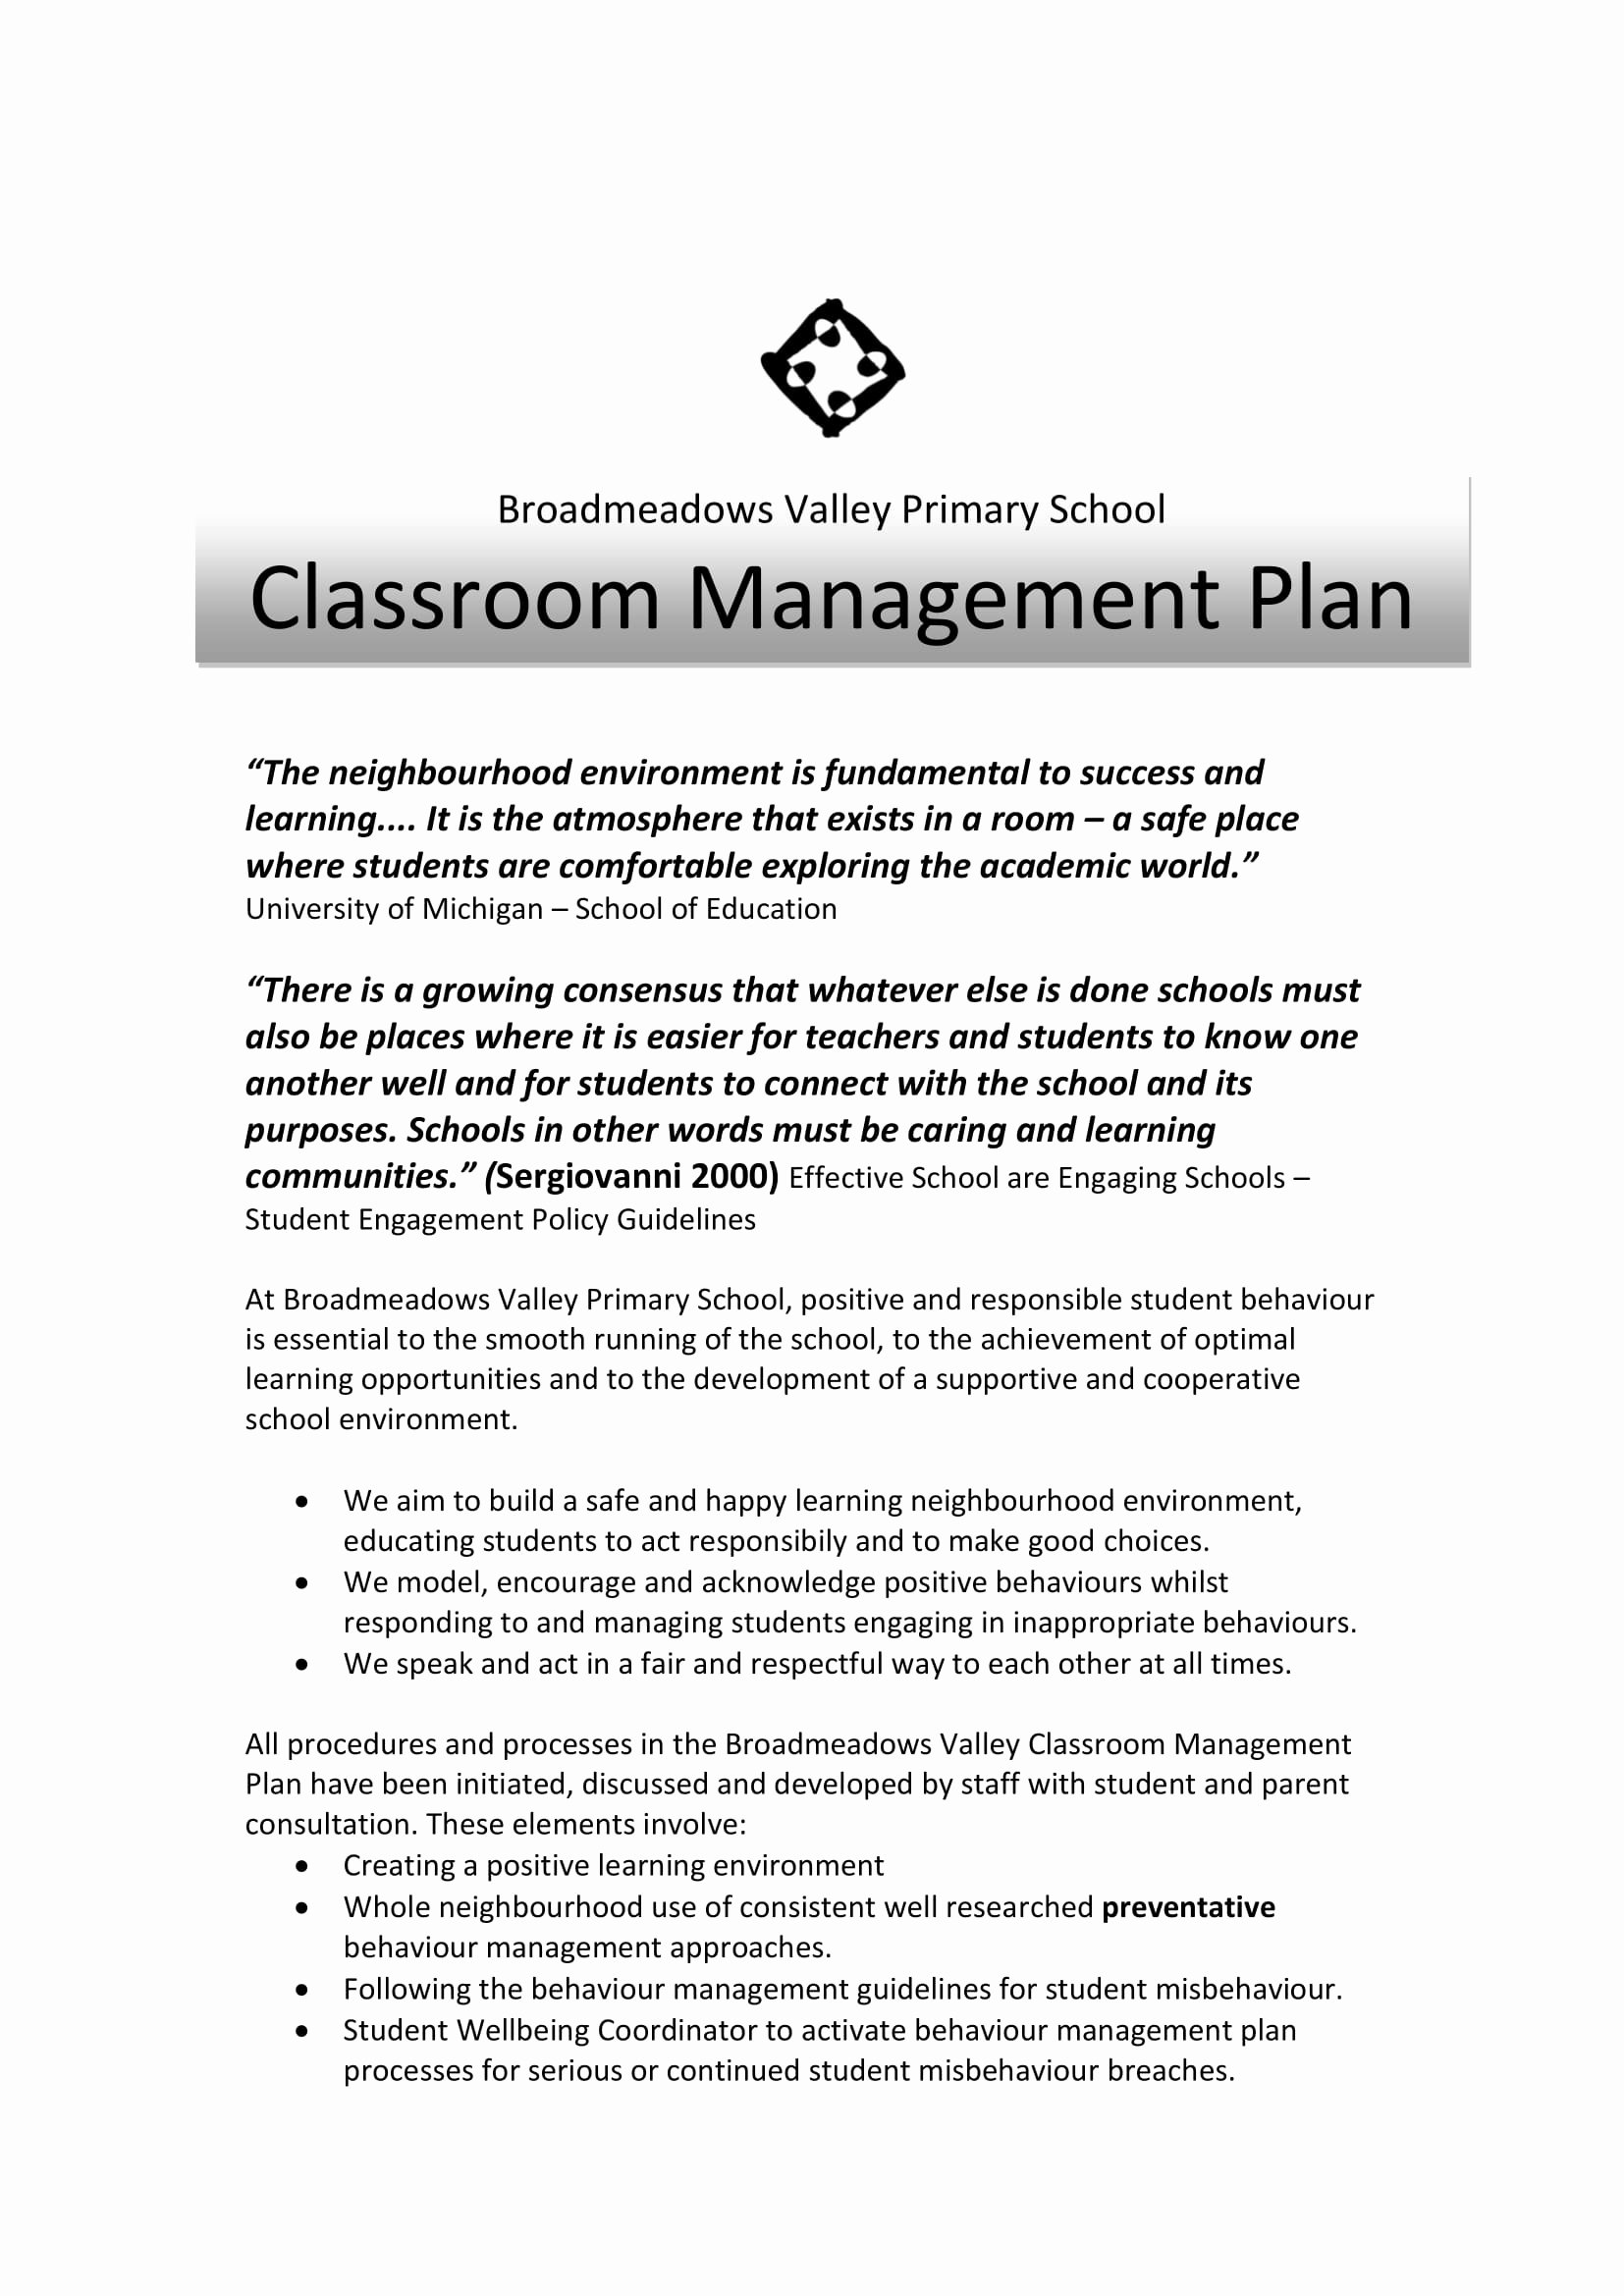 Classroom Management Plan Template Elementary Lovely 9 Effective Classroom Management Plan Examples Pdf